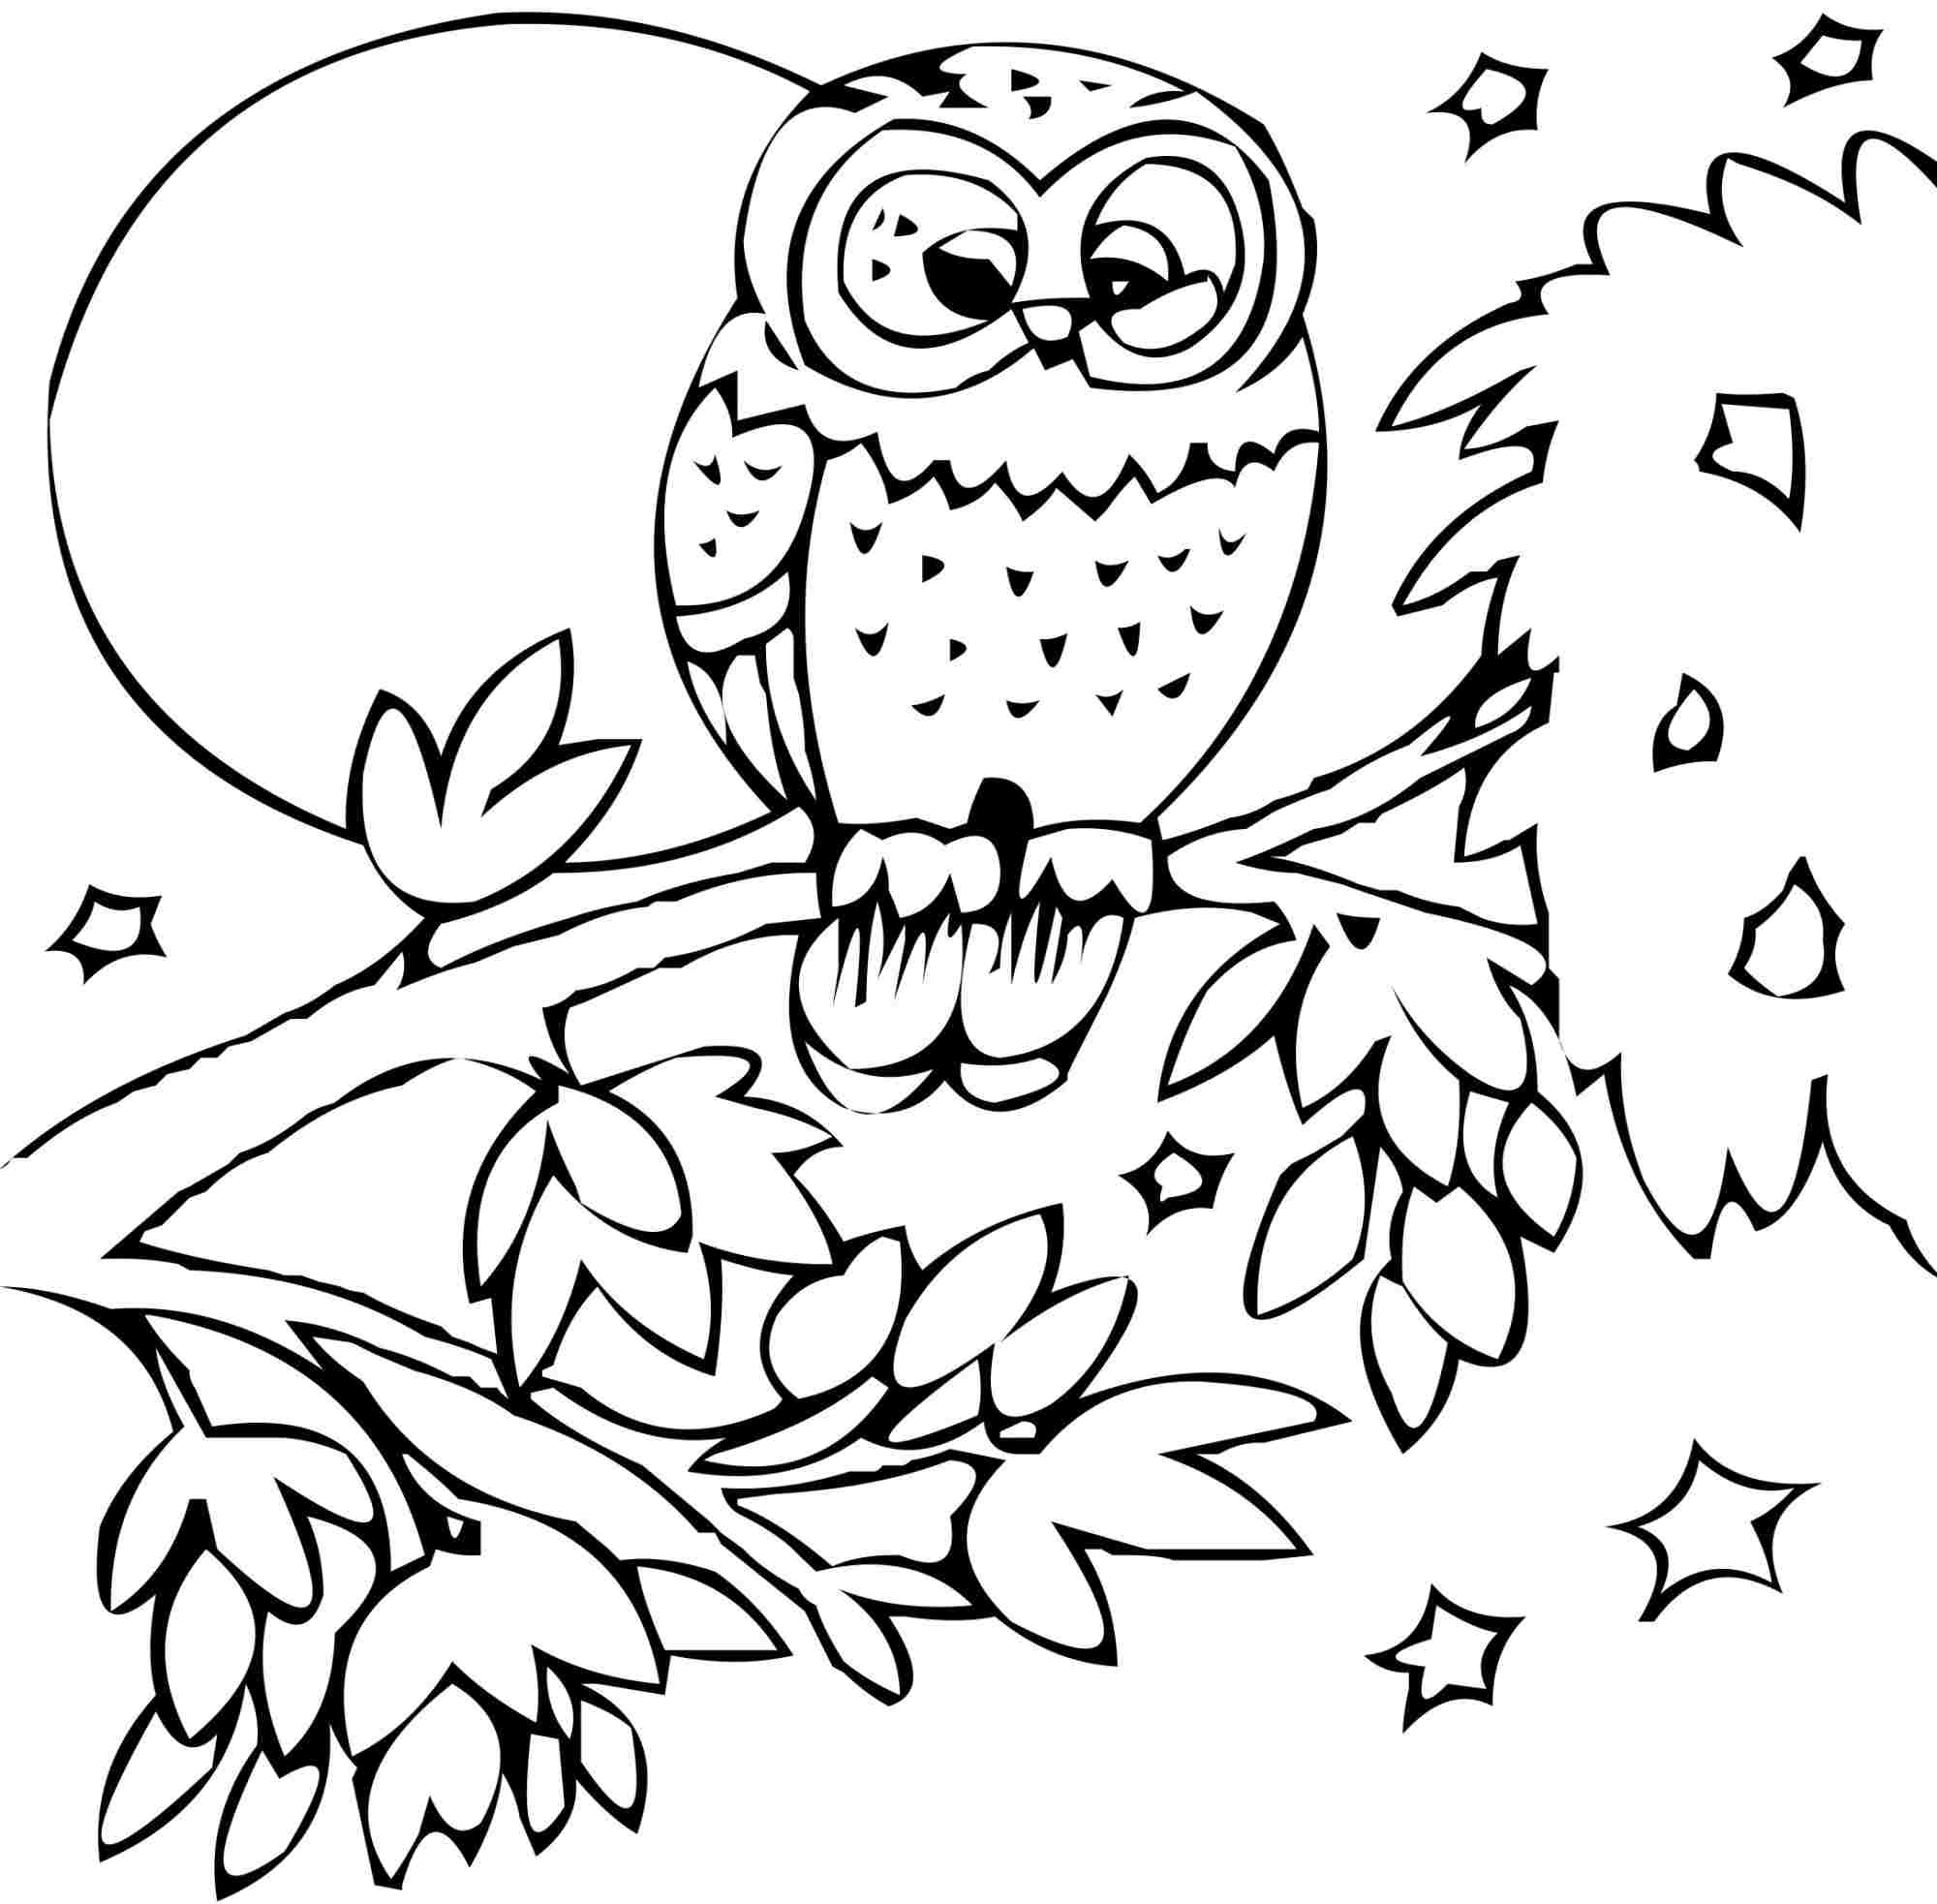 2000x1966 Zoo Animals Coloring Pages